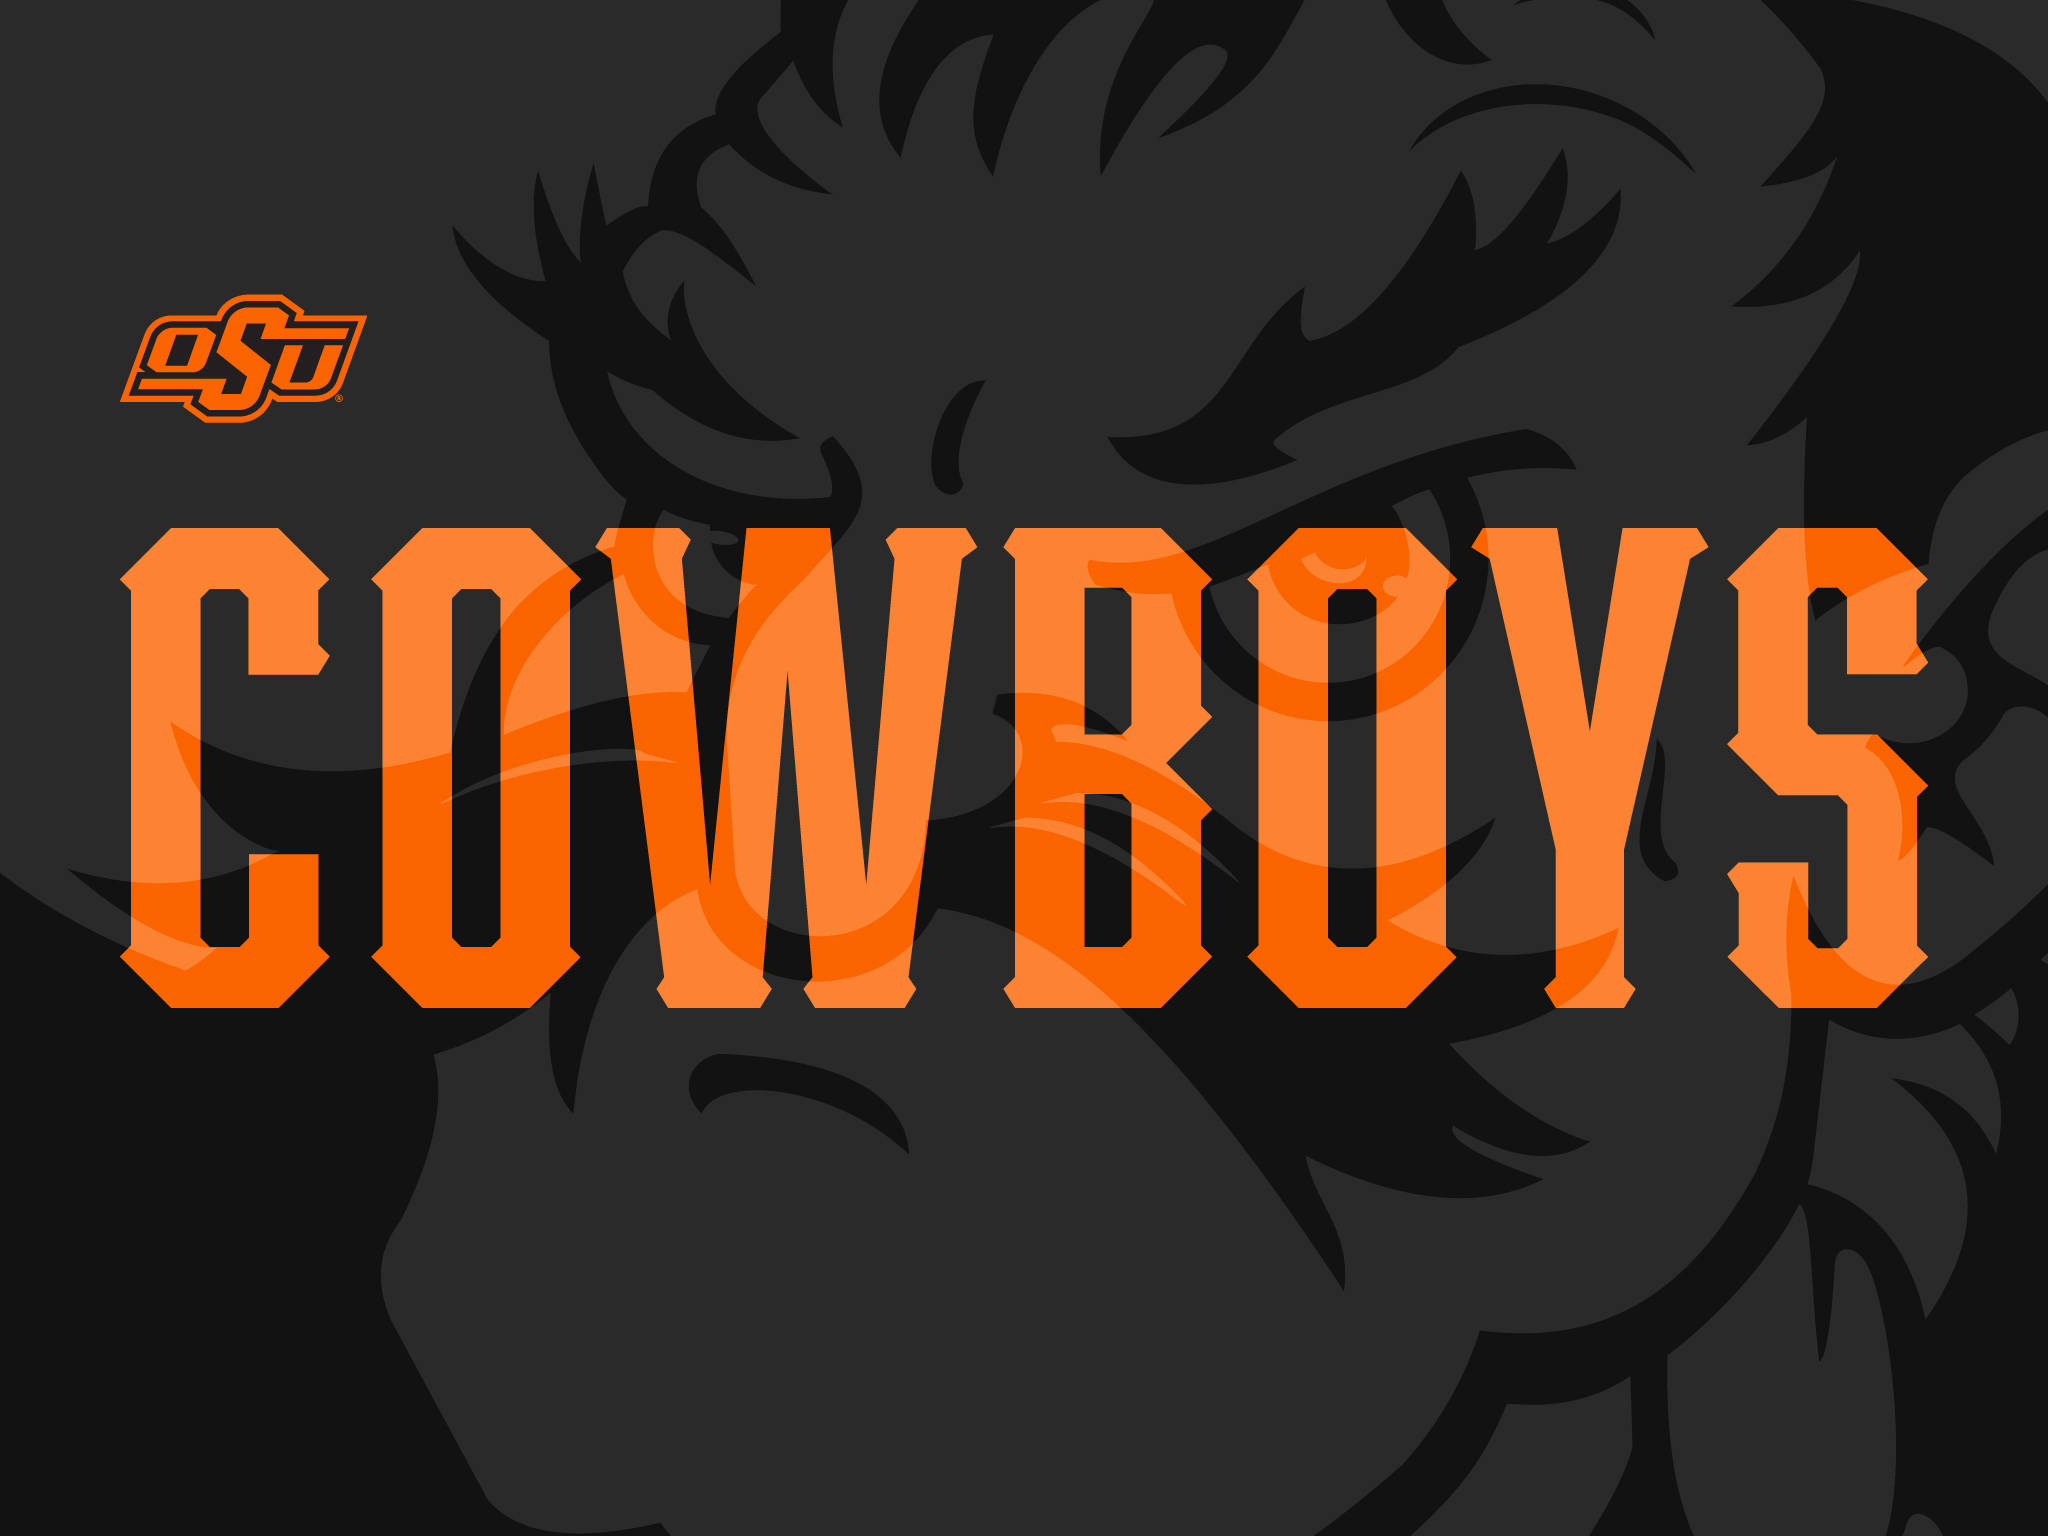 cowboys with black background